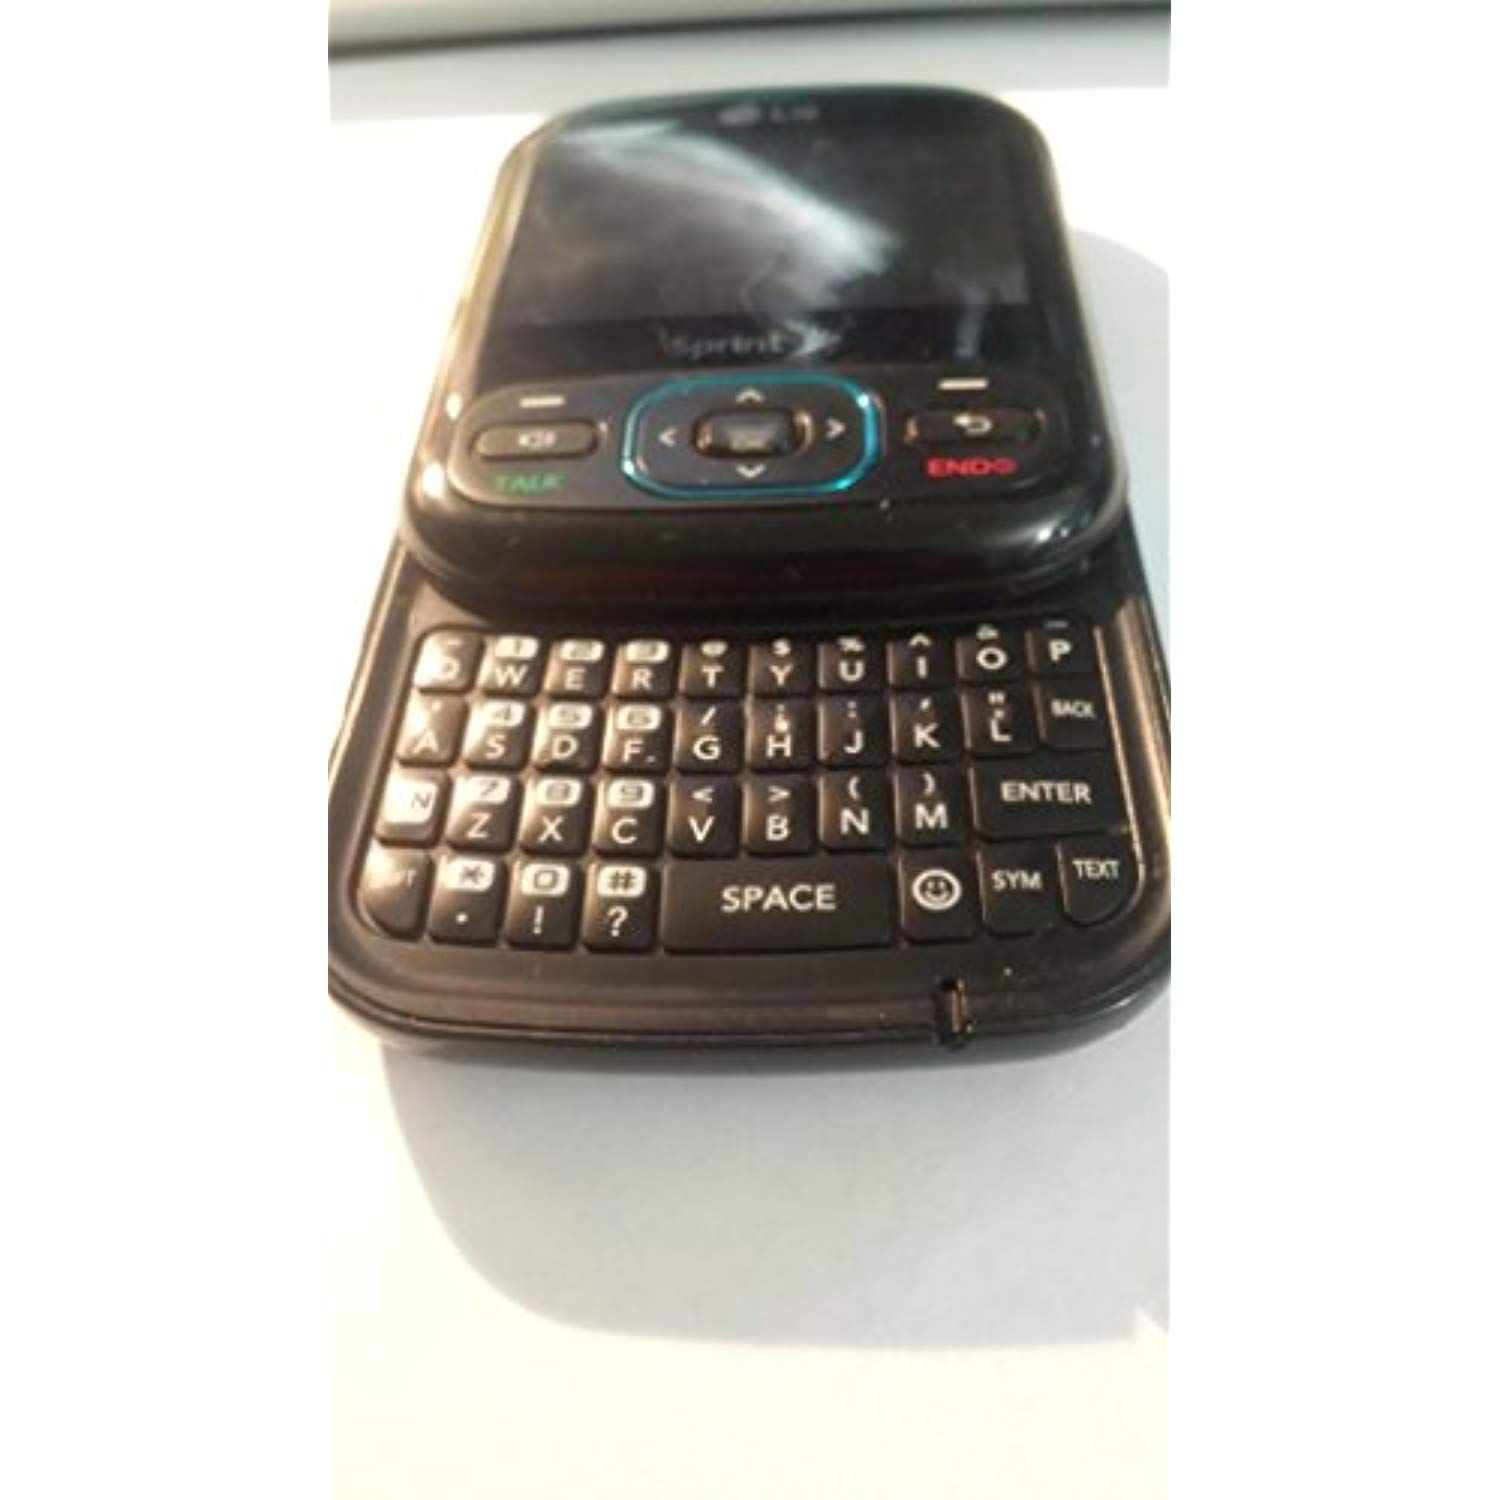 Lg Remarq Ln240 No Contract Camera Qwerty Mp3 Cdma Slider Cell Phone Sprint Check Out The Image By Visiting The Link Phone Cell Phone Unlocked Cell Phones